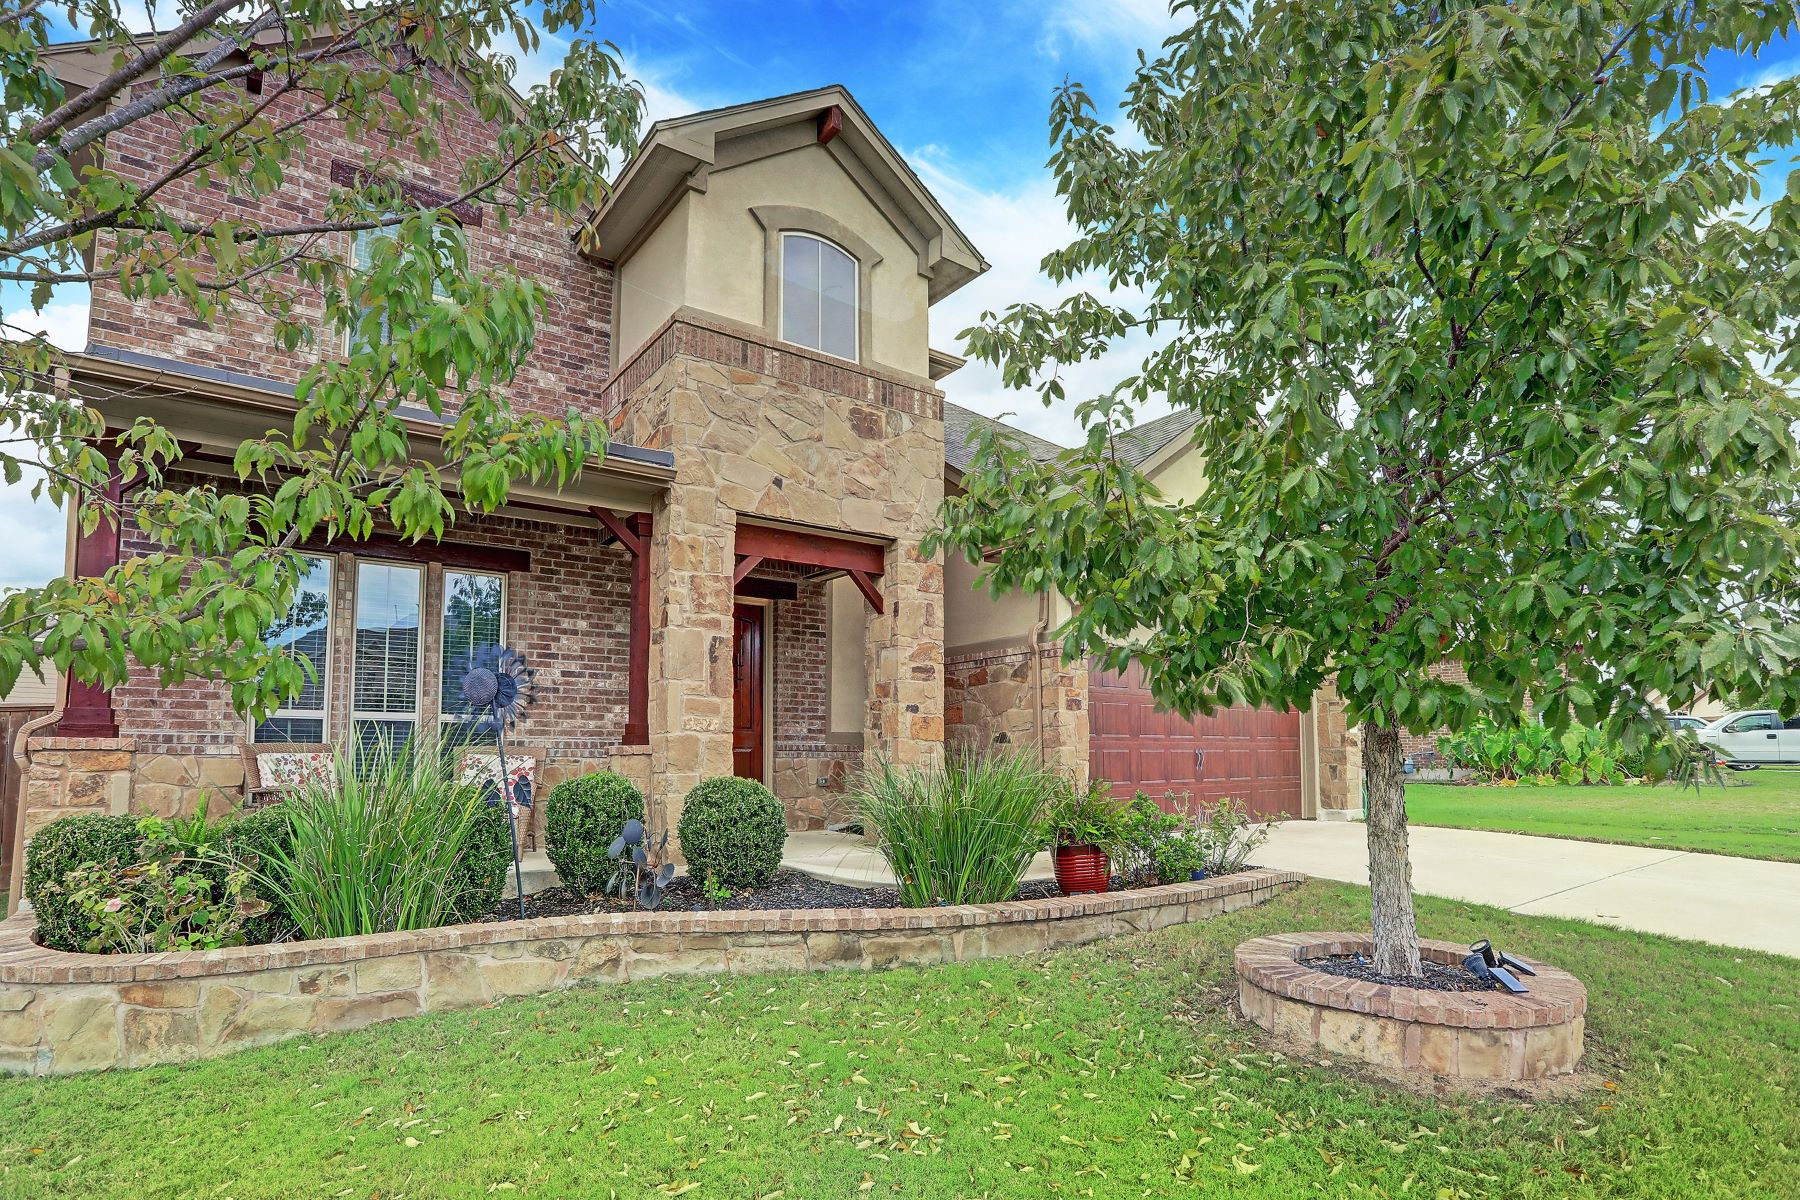 Single Family Homes for Sale at 2808 San Milan Pass, Round Rock, TX 78665 2808 San Milan Pass Round Rock, Texas 78665 United States